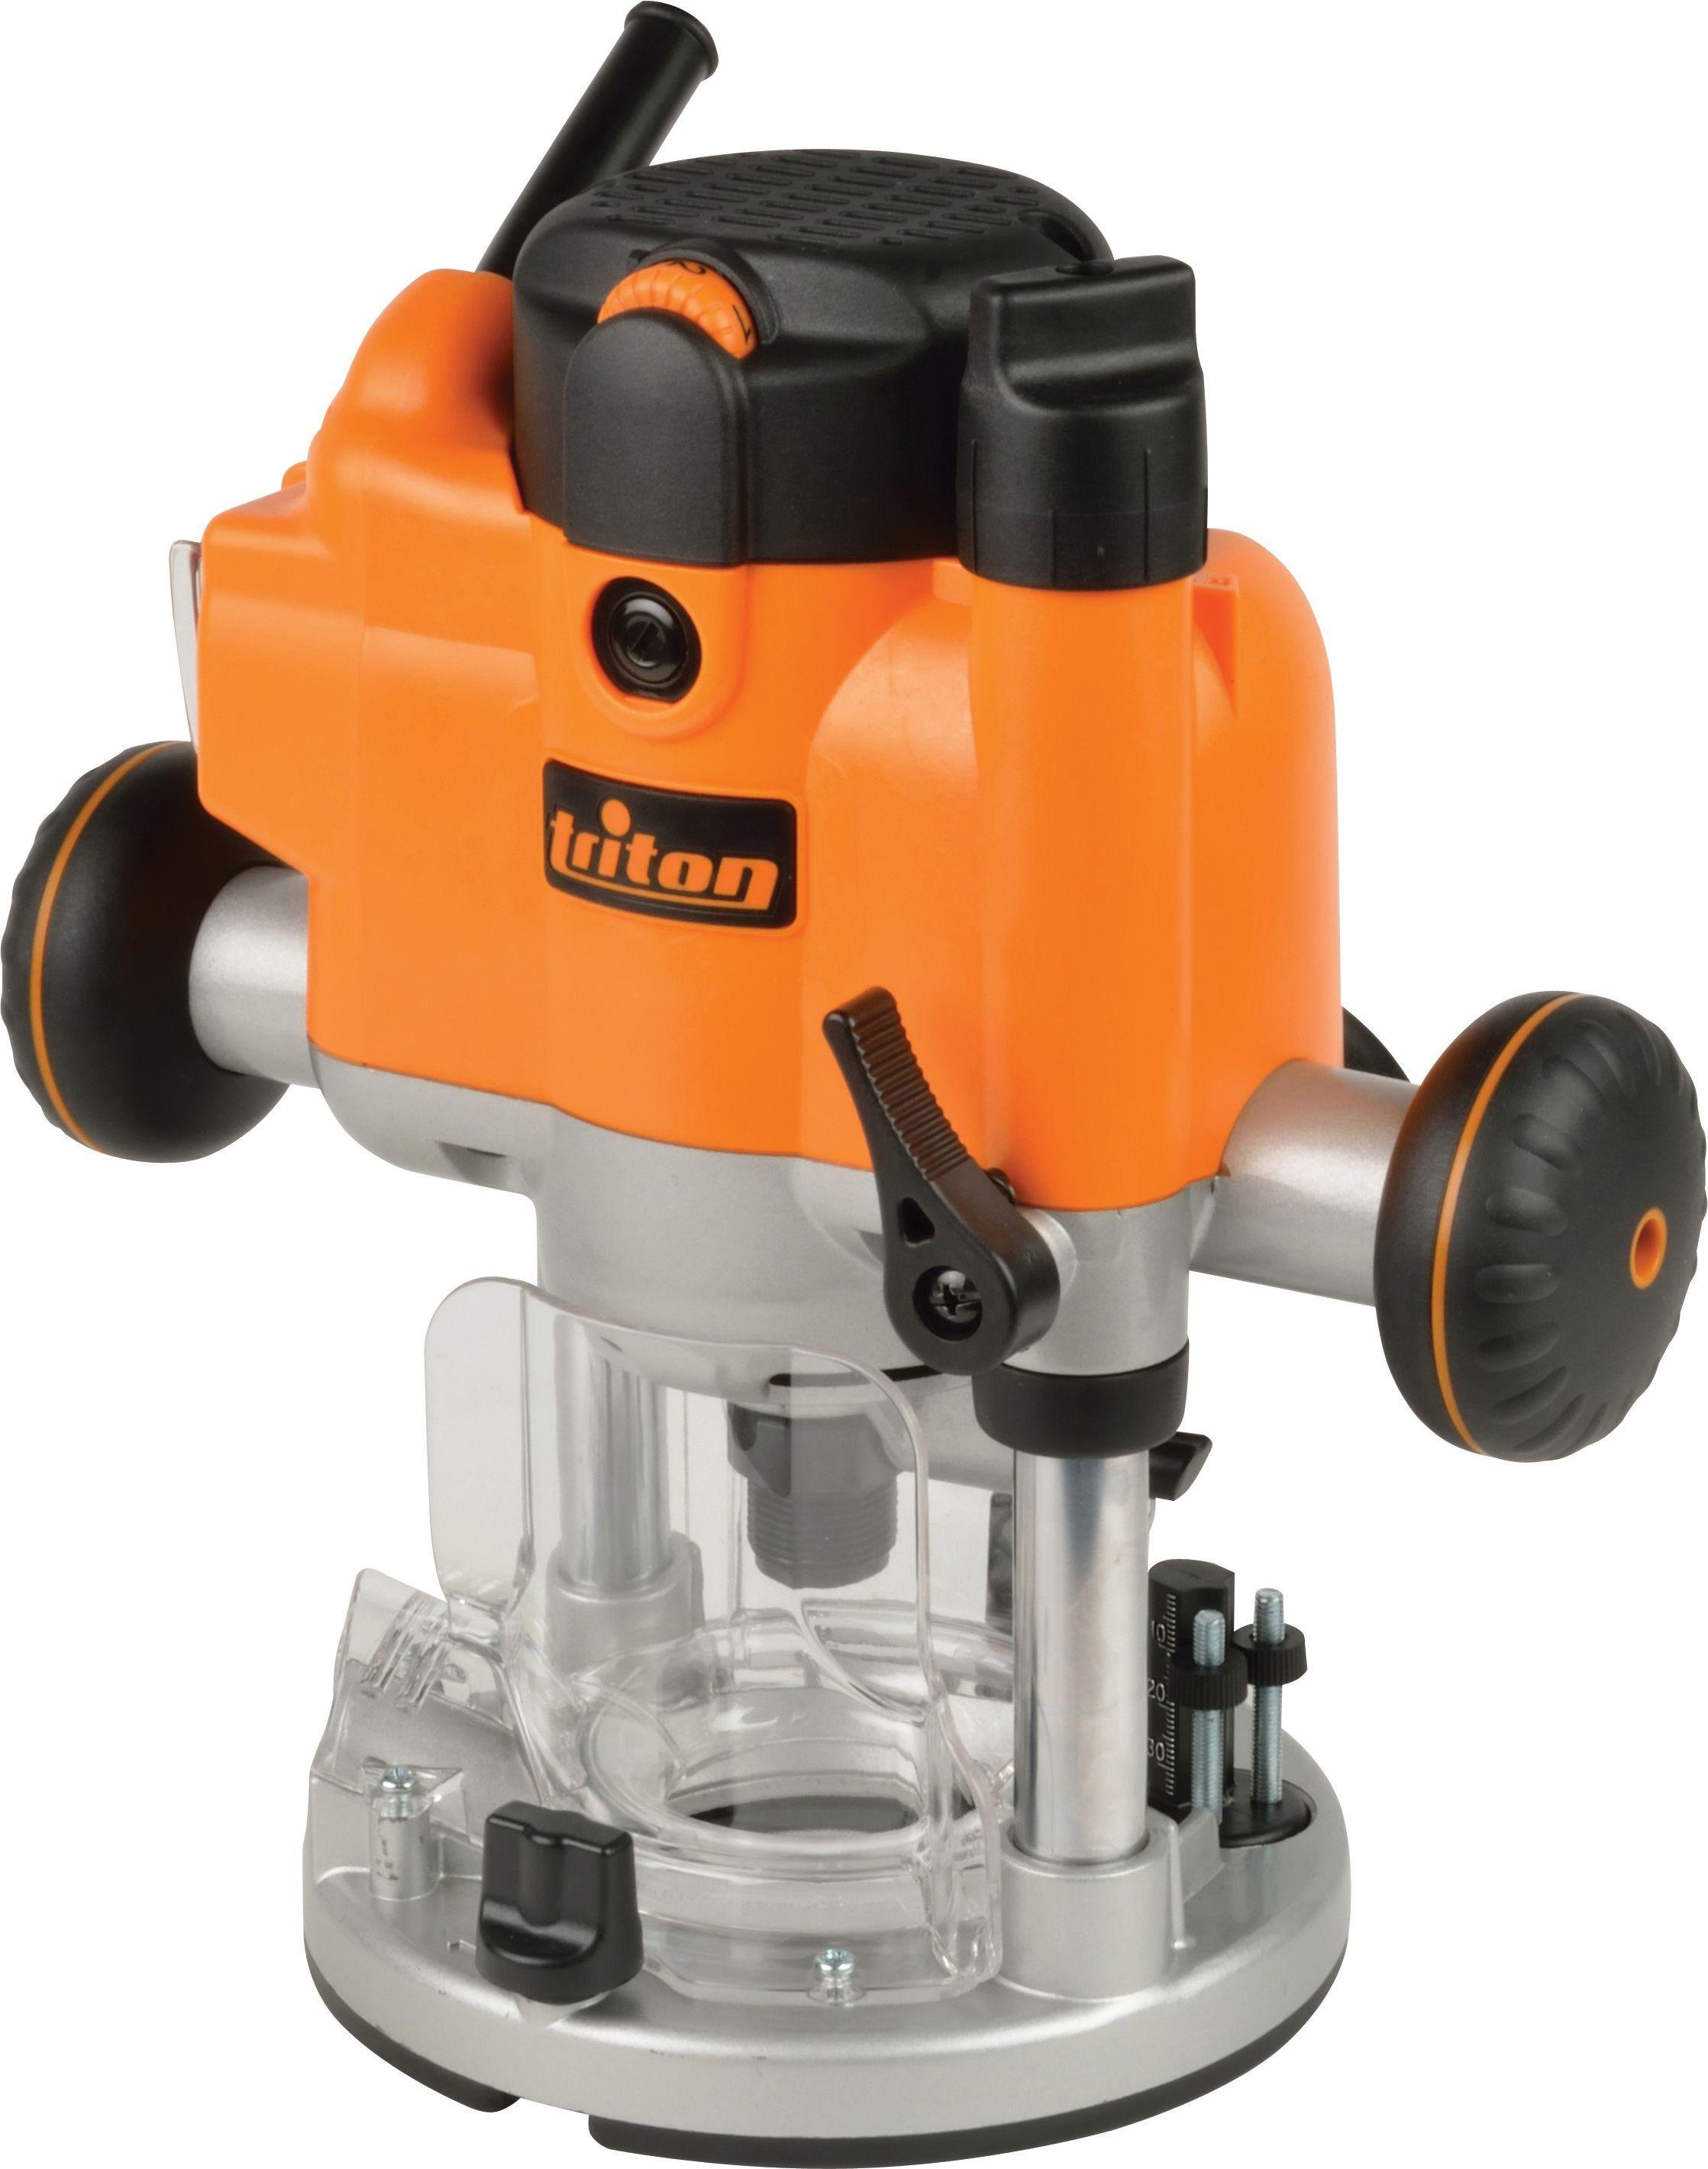 Triton - JOF001 Compact Precision Plunge Router lowest price